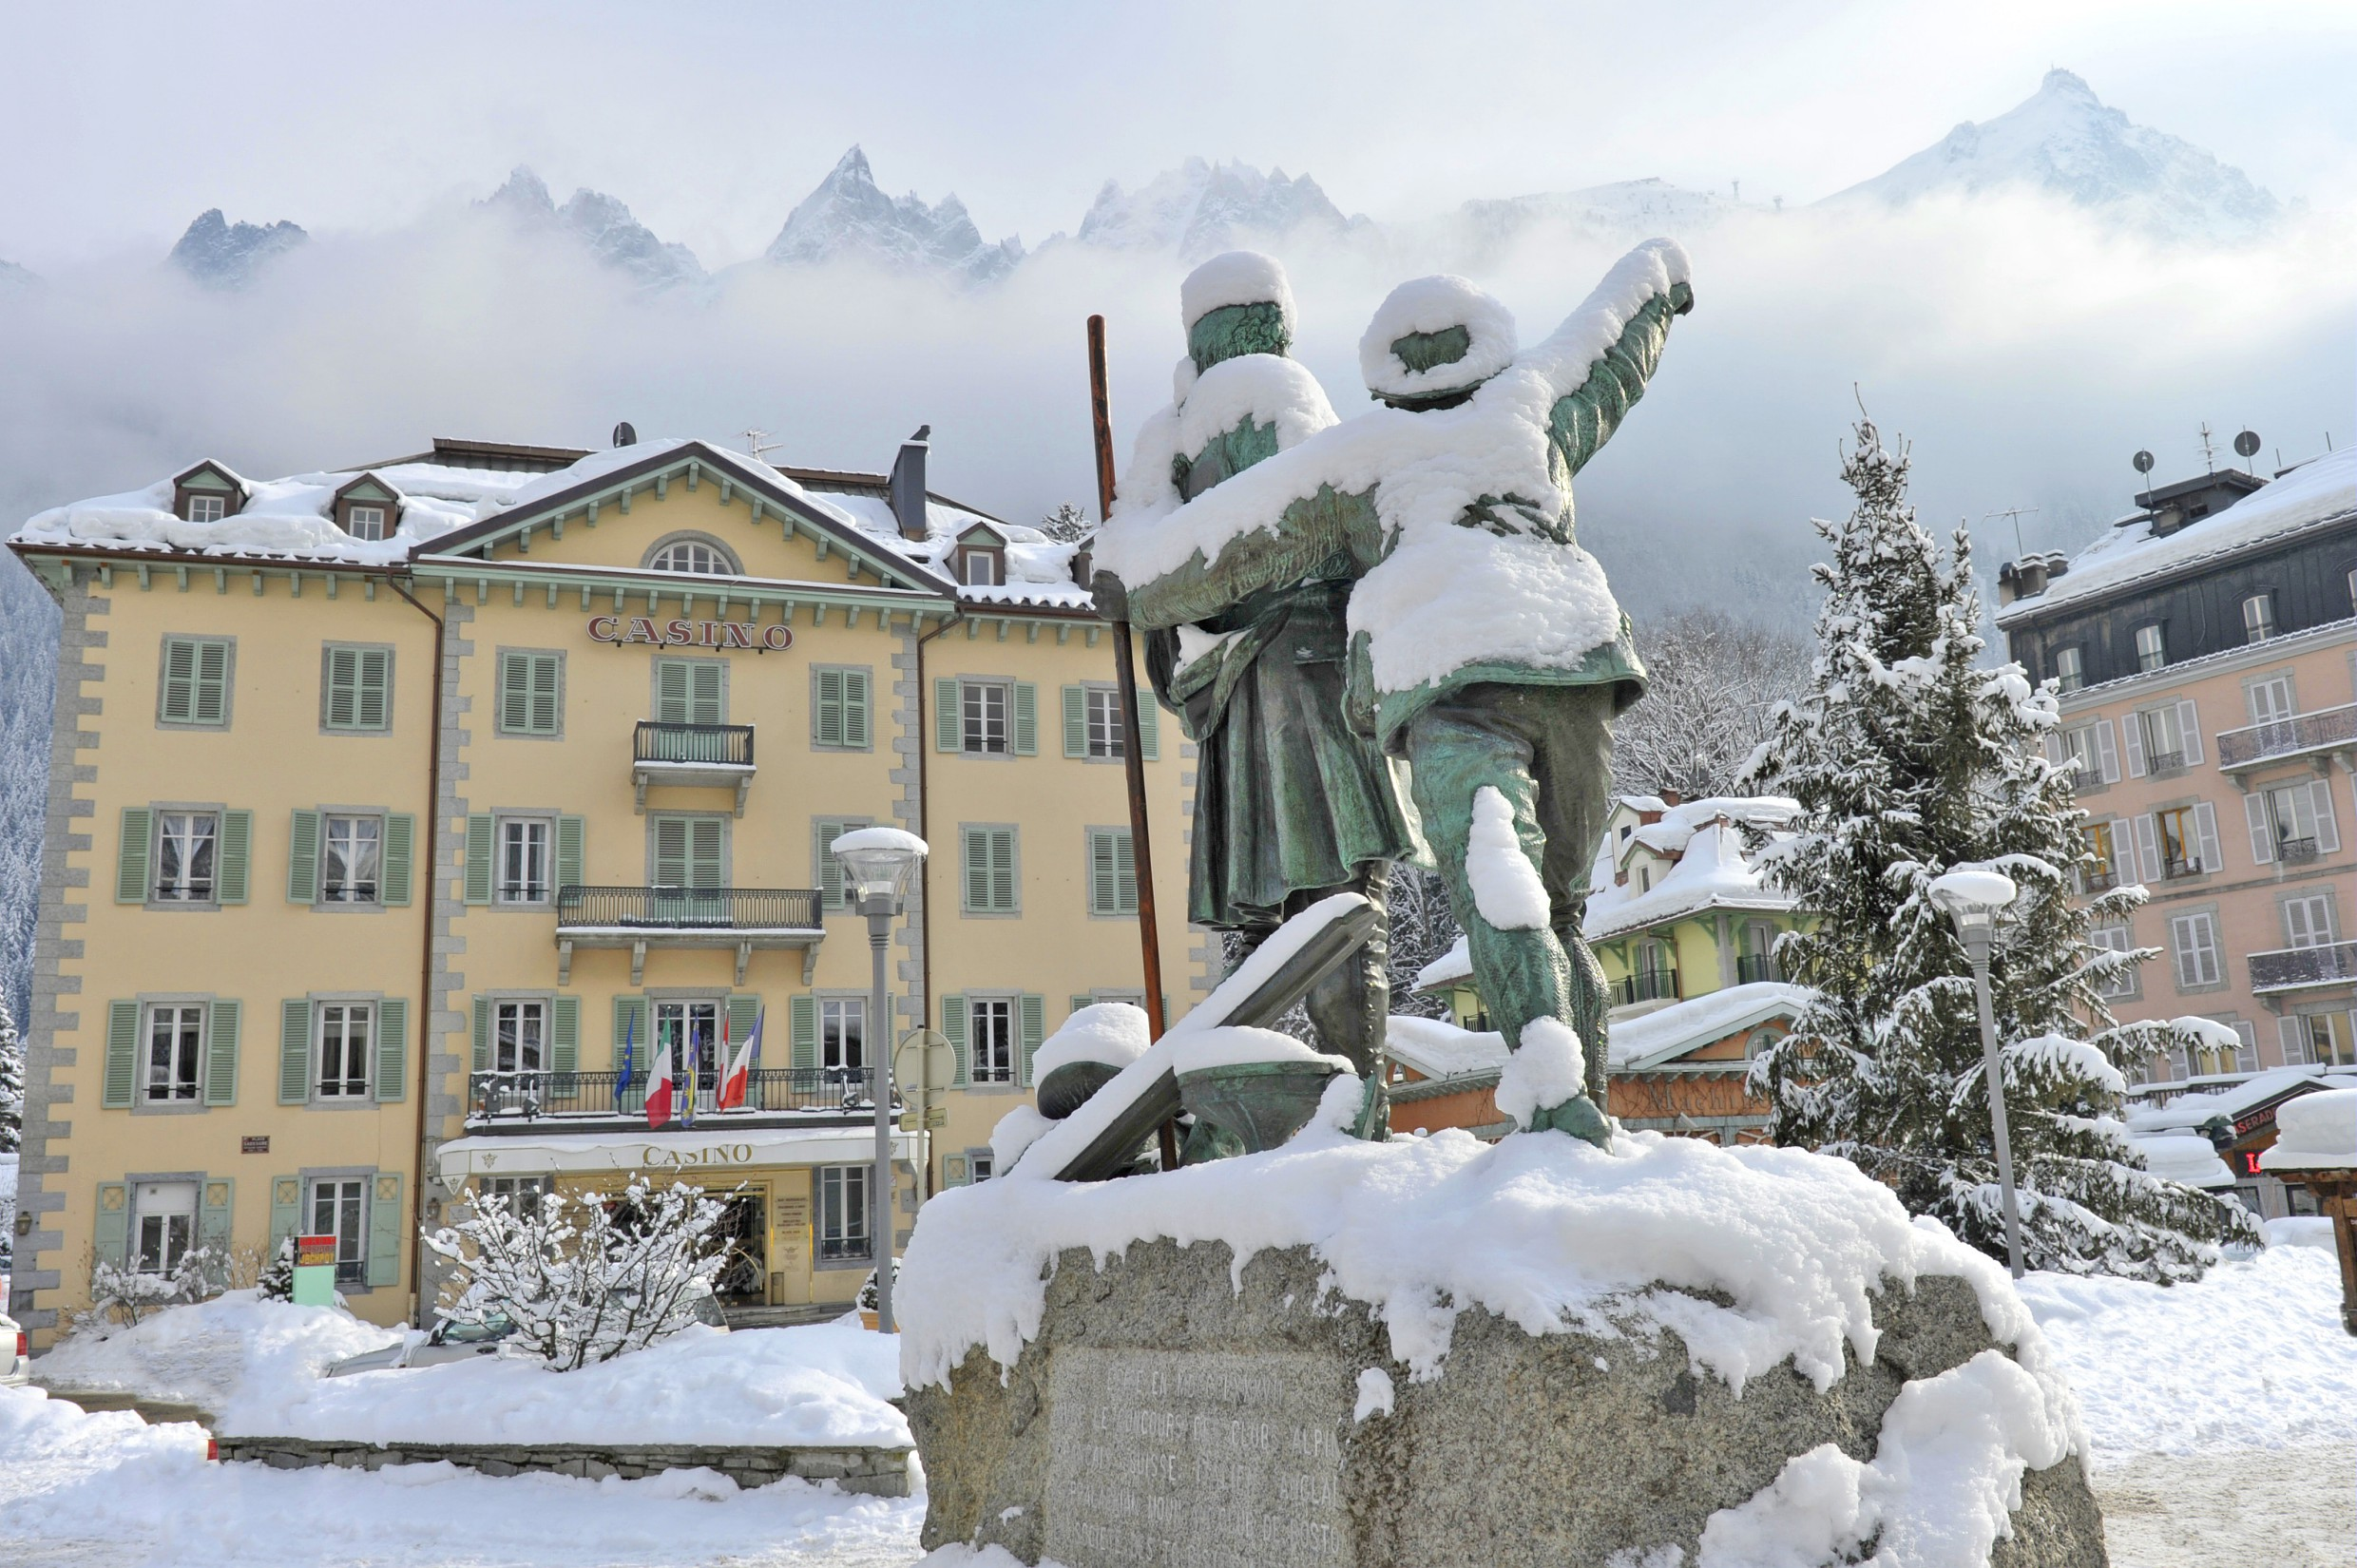 Chamonix Skiing Holidays Ski Apartments Peak Retreats